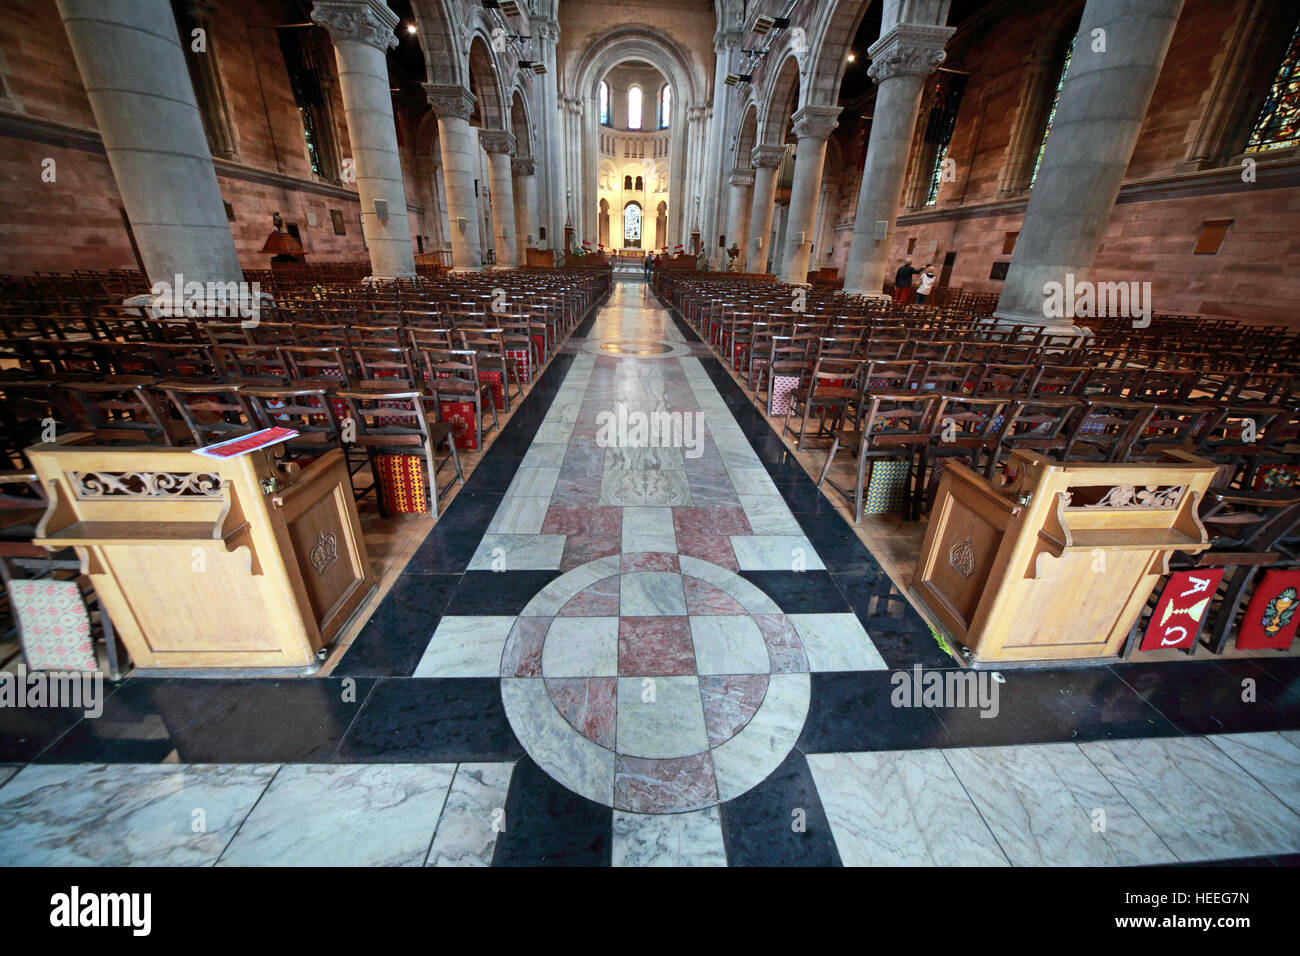 St Annes Belfast Cathedral Interior,pano, - Stock Image